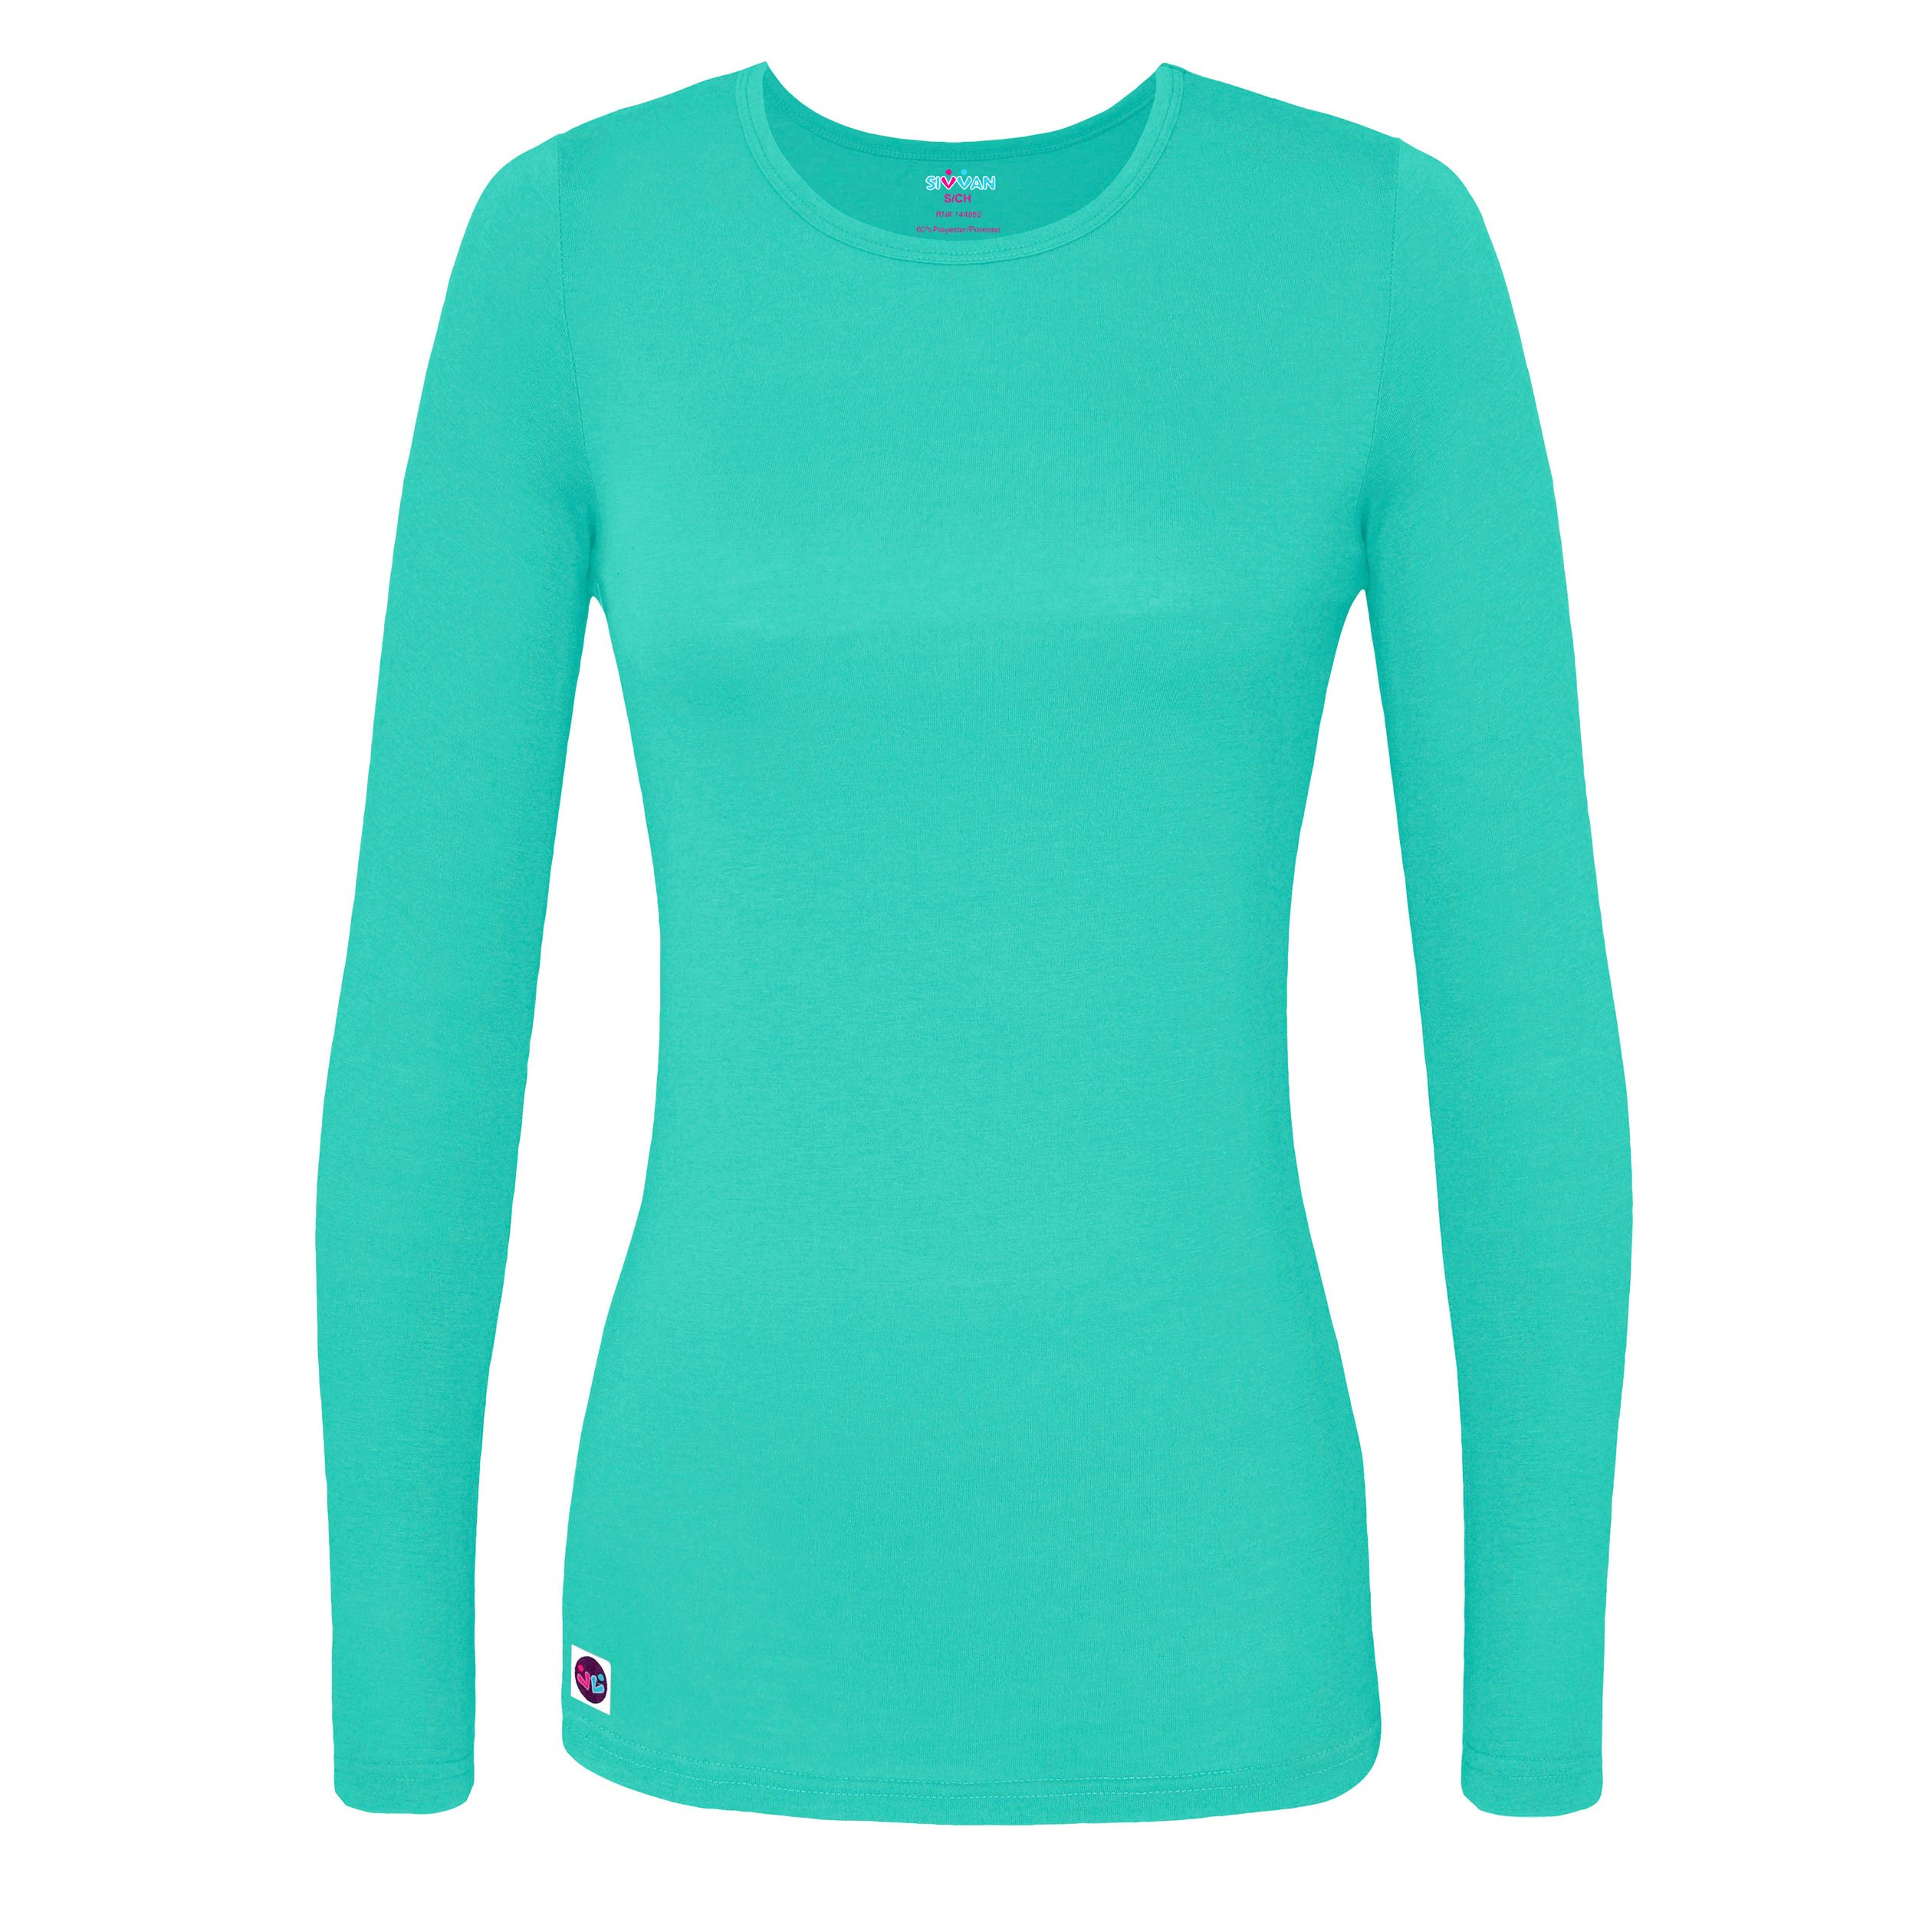 Sivvan Women's Comfort Long Sleeve T-Shirt / Underscrub Tee - S8500 - Sea Glass - M